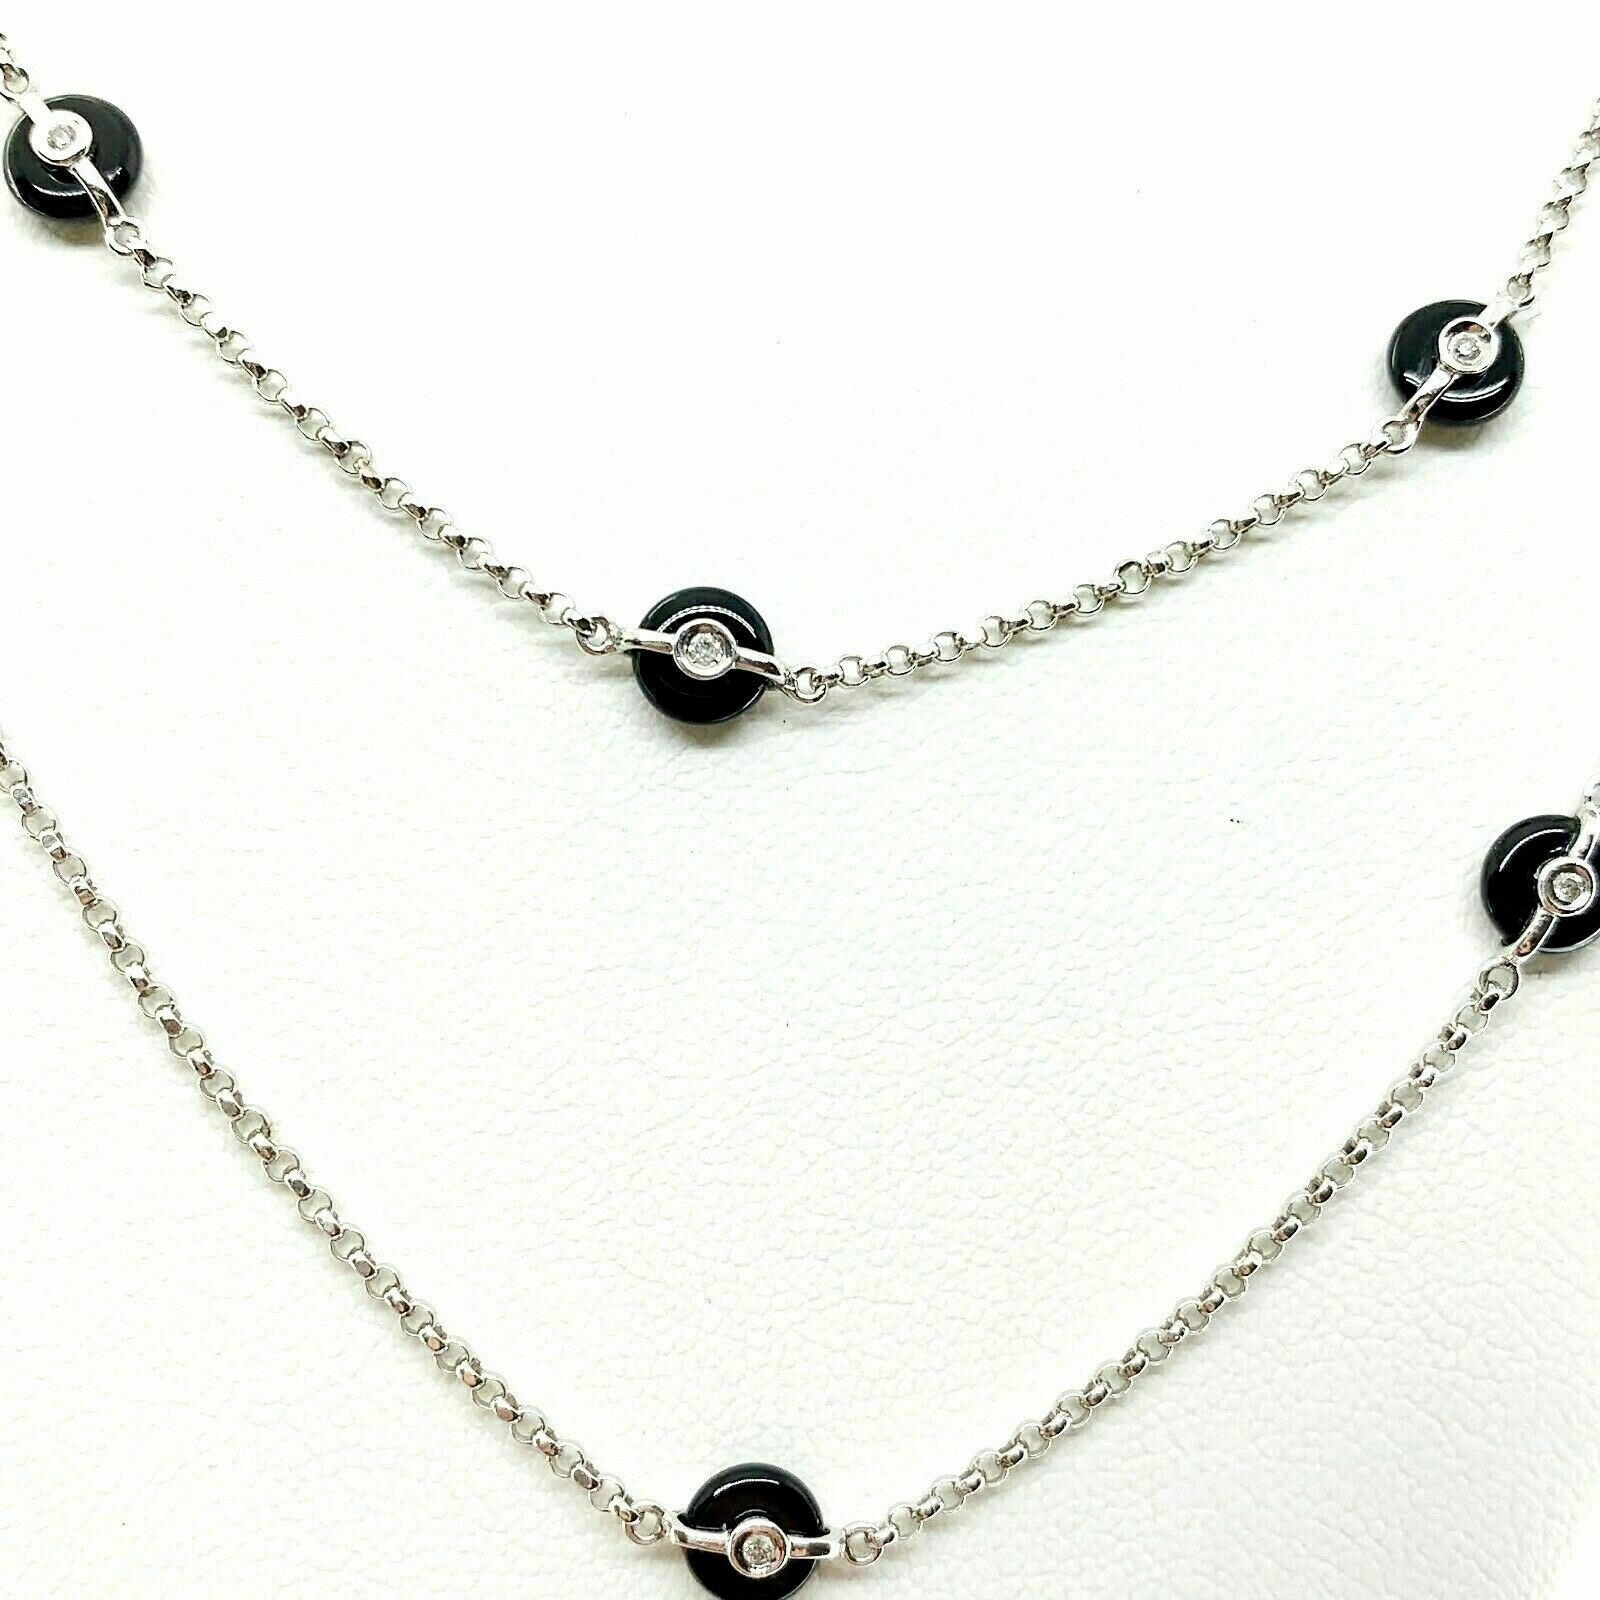 0.25 Carats t.w. Hand Assembled Diamond by The Yard and Onyx Necklace Chain 14K